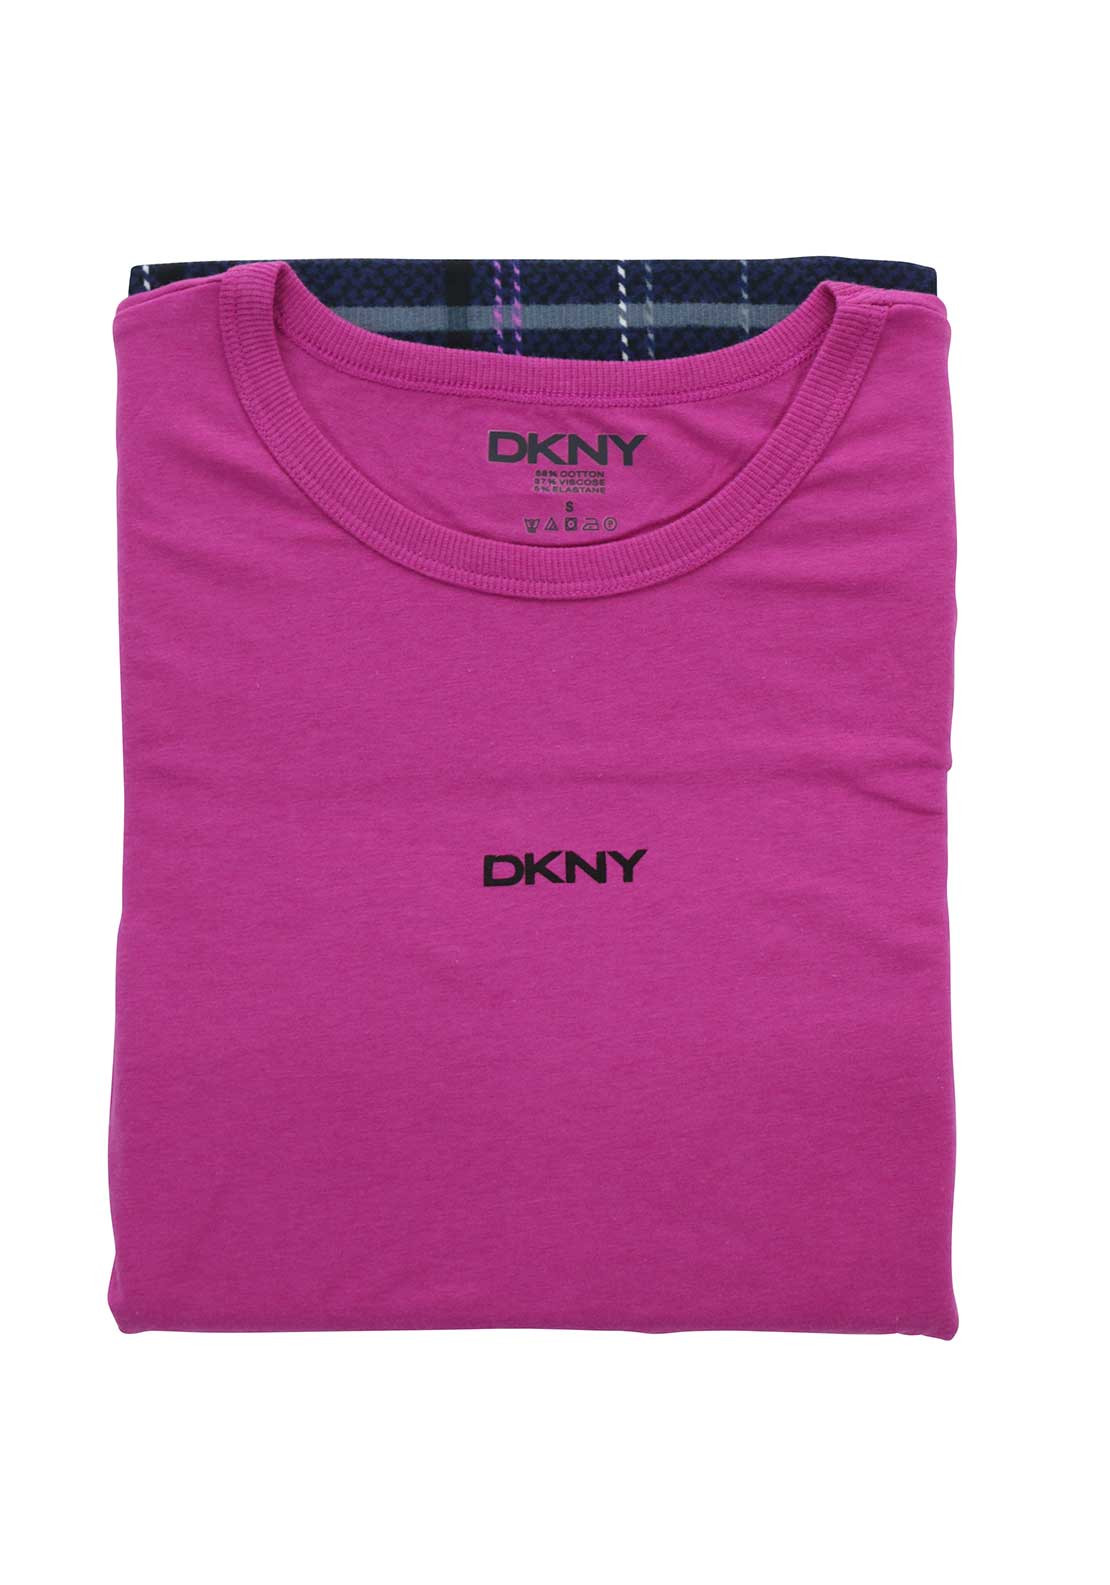 DKNY Womens Check Pyjama Set, Pink and Navy